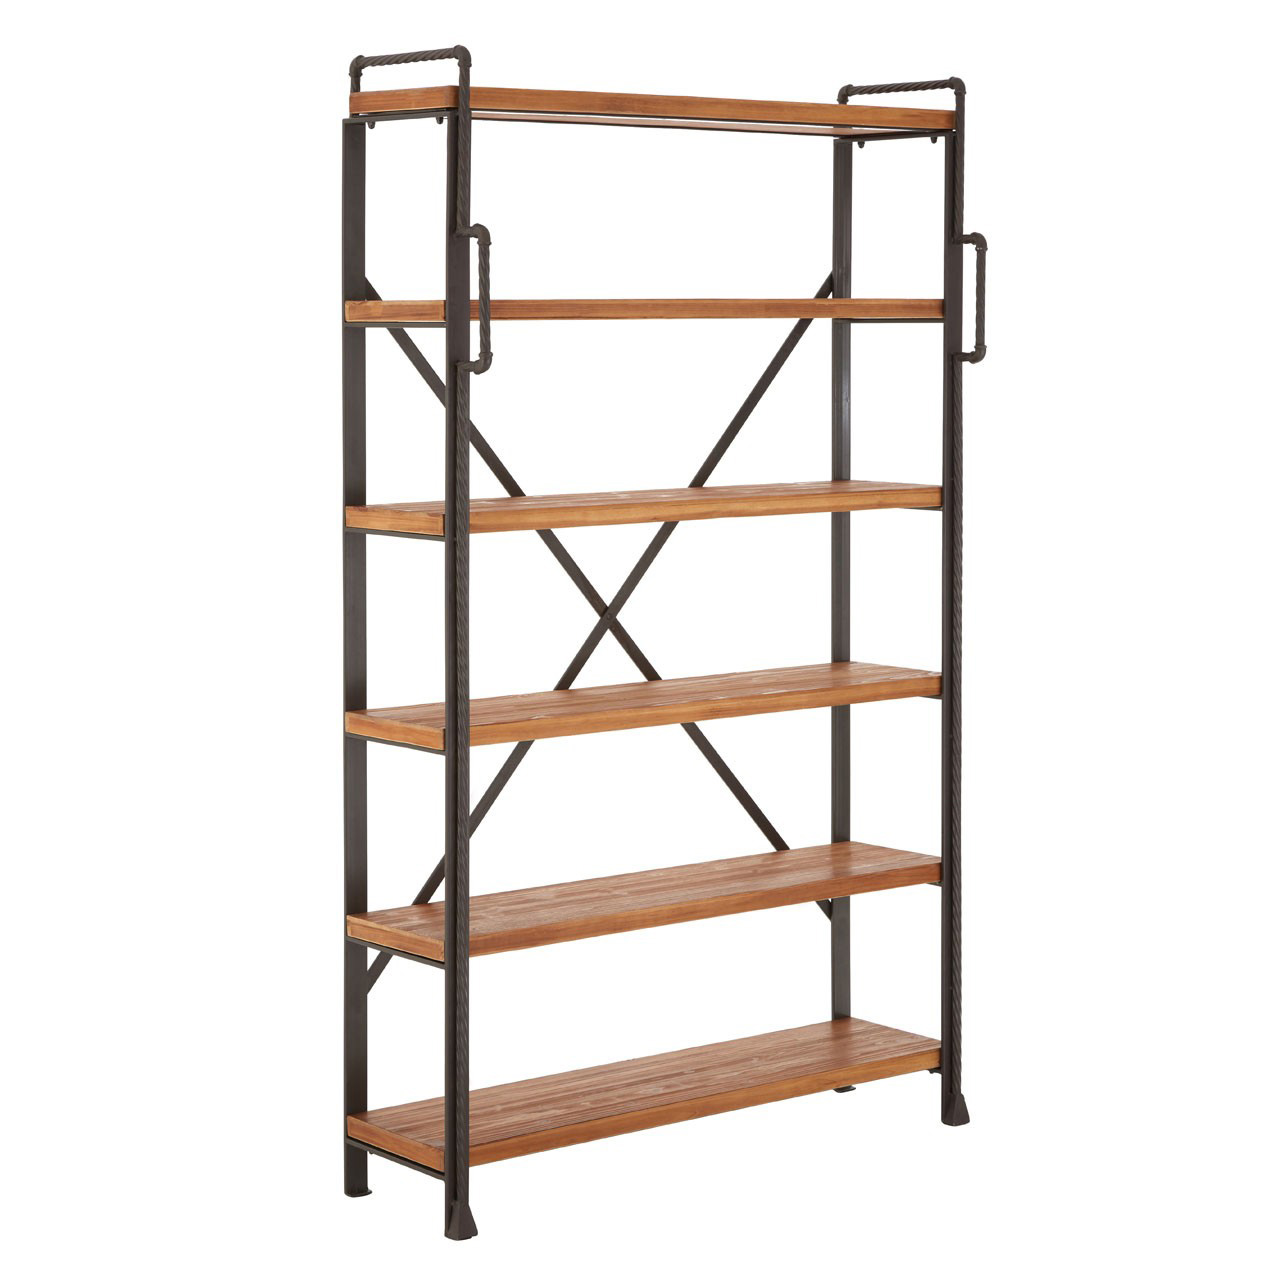 Foundry shelving unit wide at FADS.co.uk